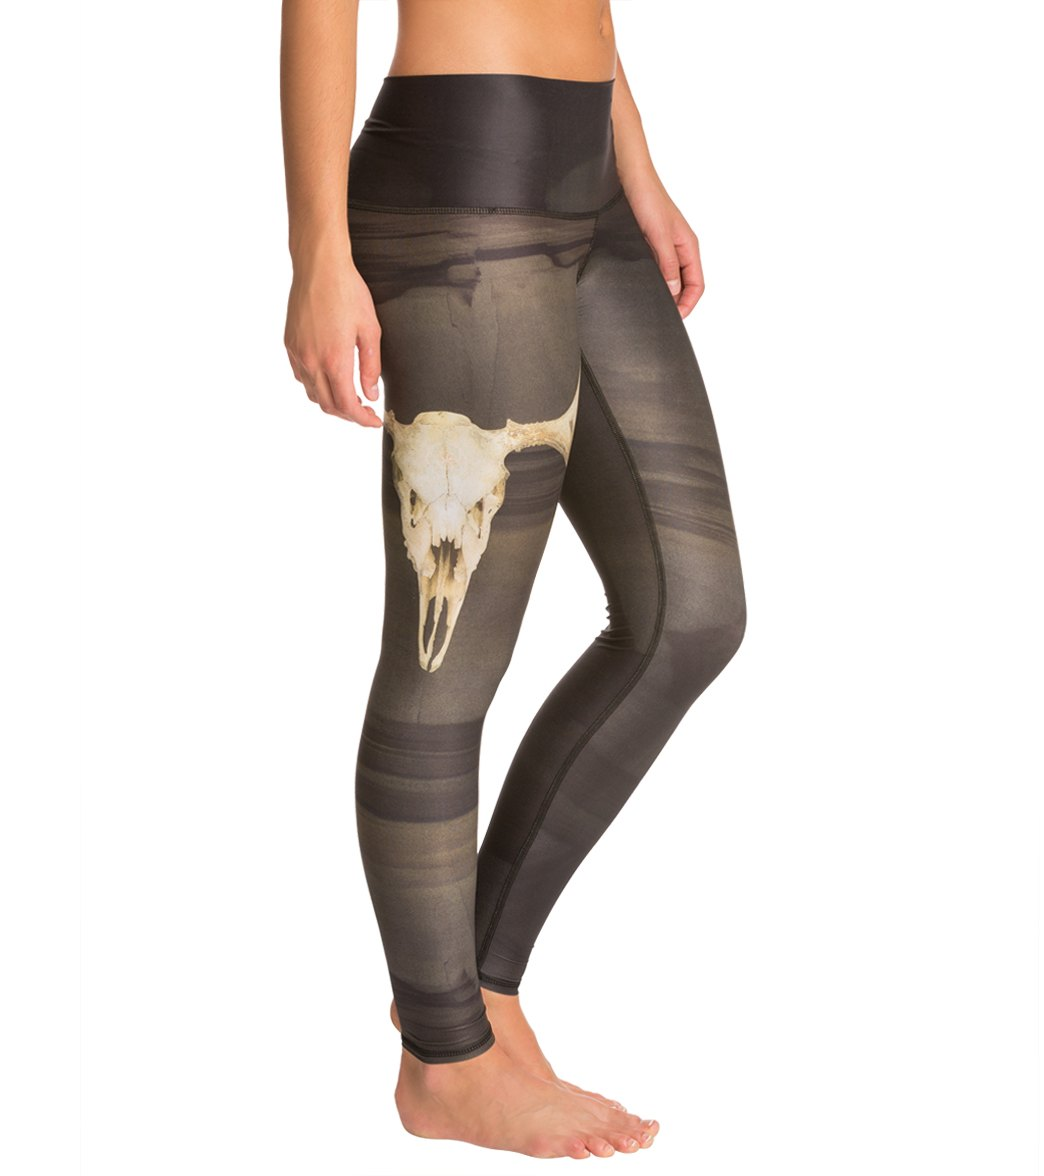 51beb6edb2579 Teeki Deer Medicine Hot Yoga Leggings at YogaOutlet.com - Free Shipping